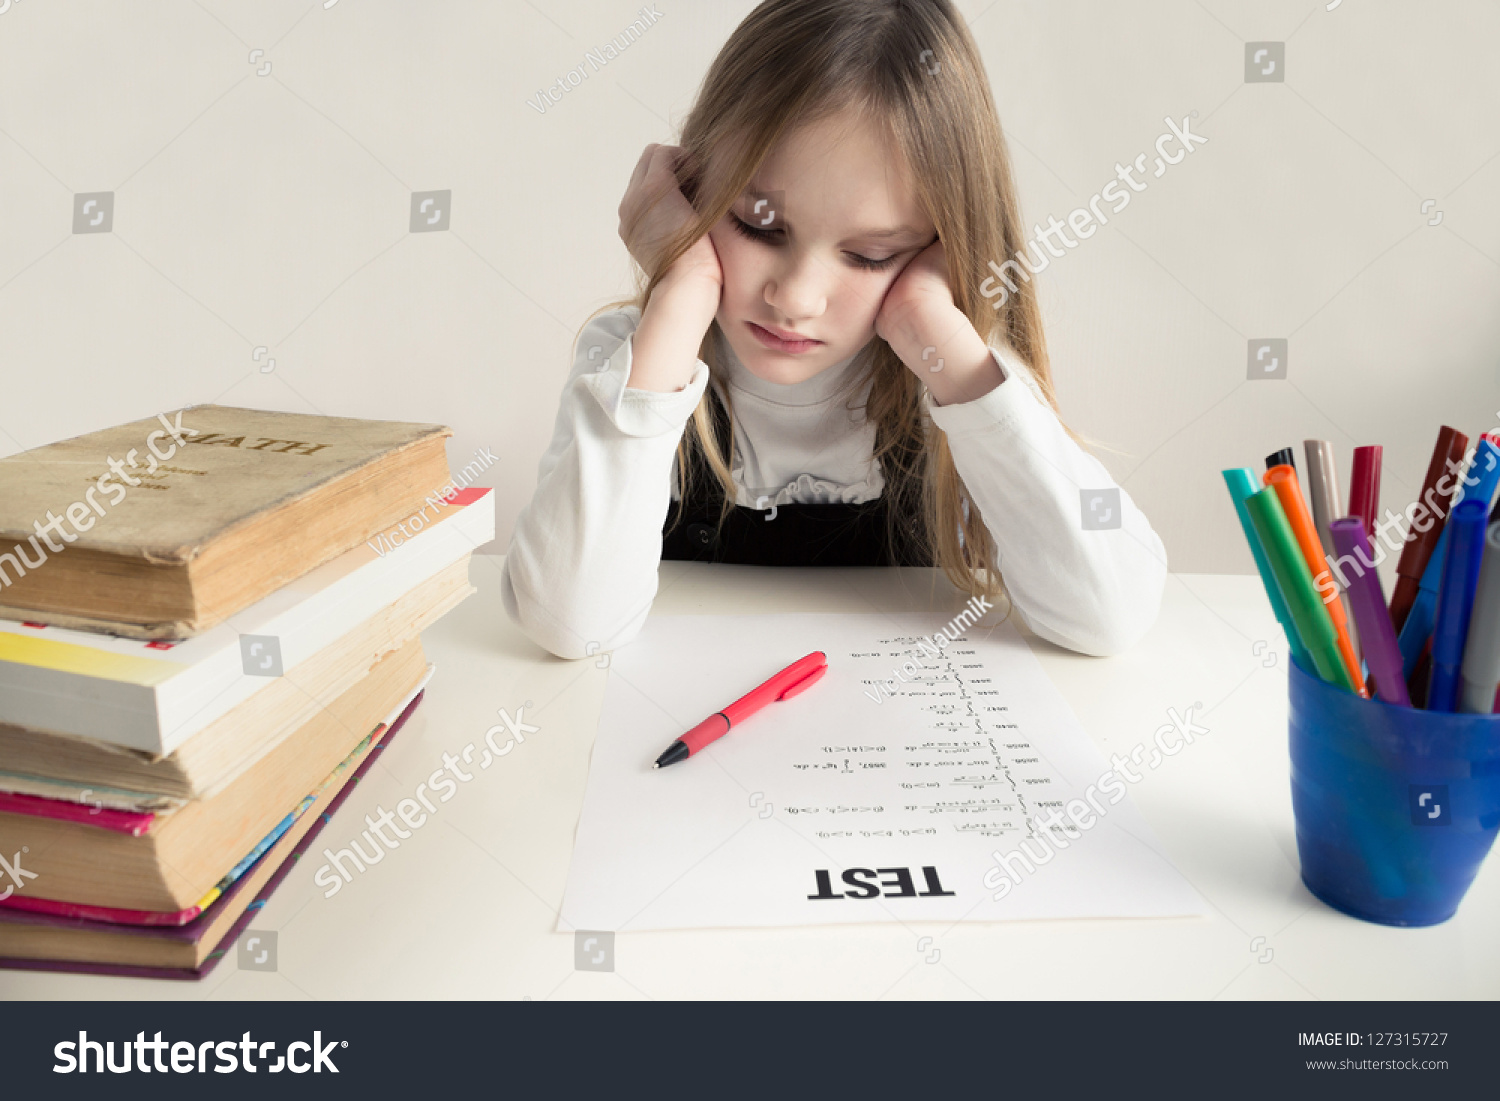 Worksheet How Do You Study For A Math Test worksheet how do you study for a math test mikyu free little girls studying thinking hard on stock